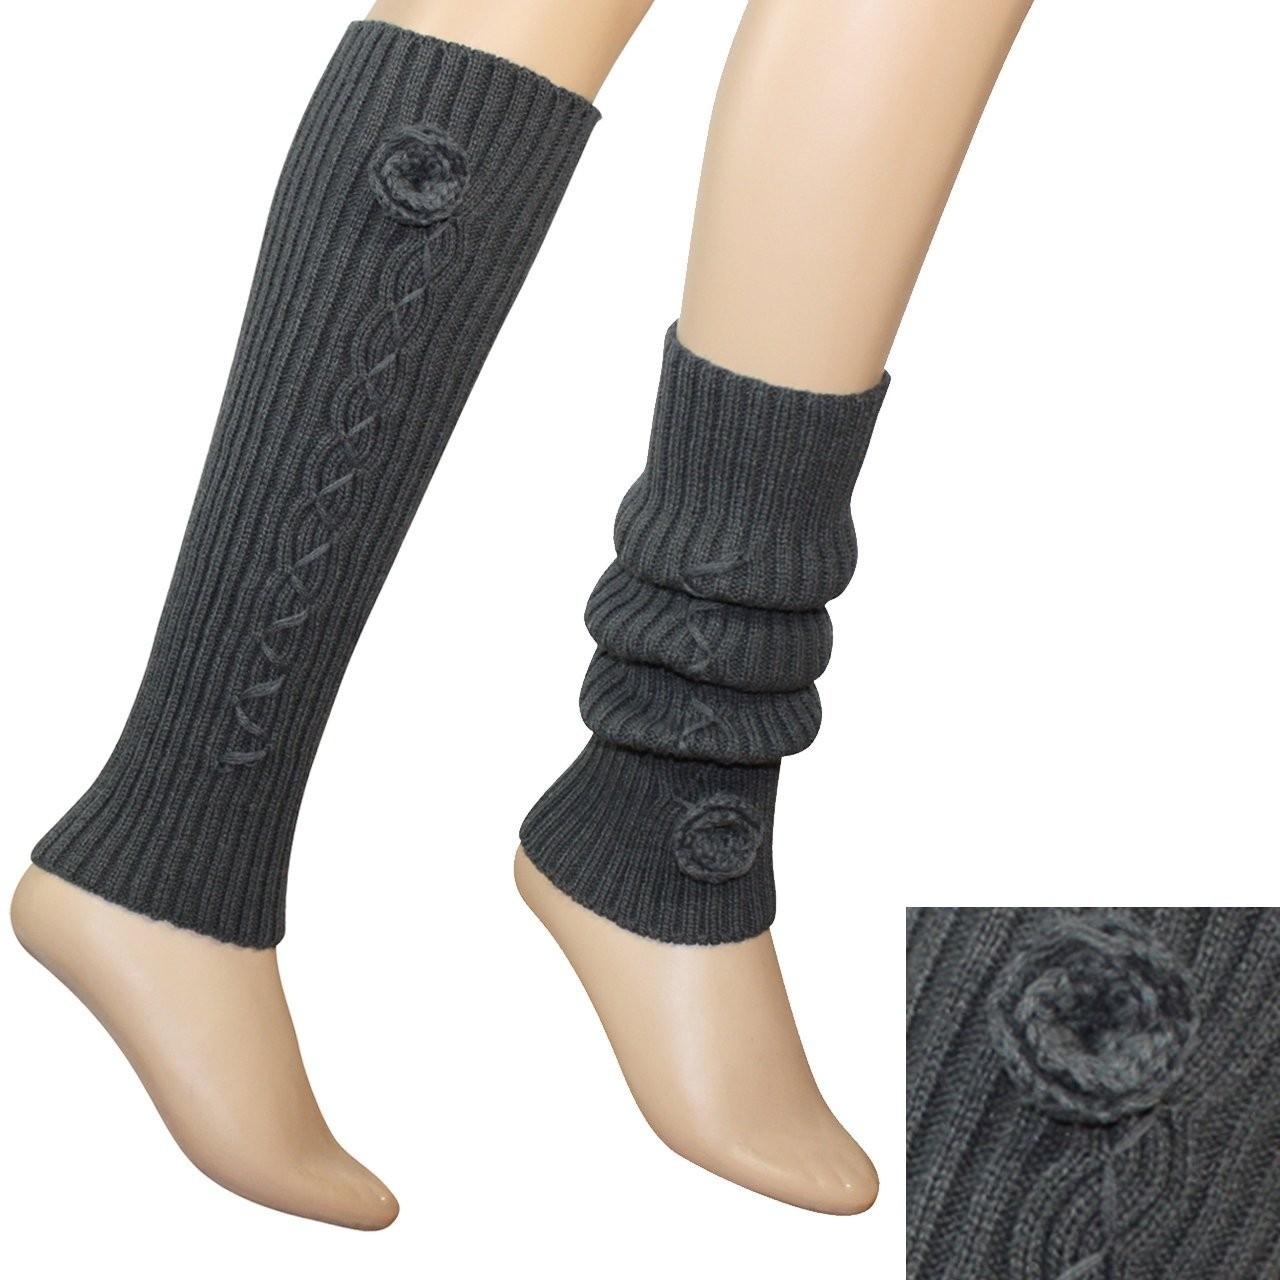 leg warmers and boots images - images of leg warmers and boots